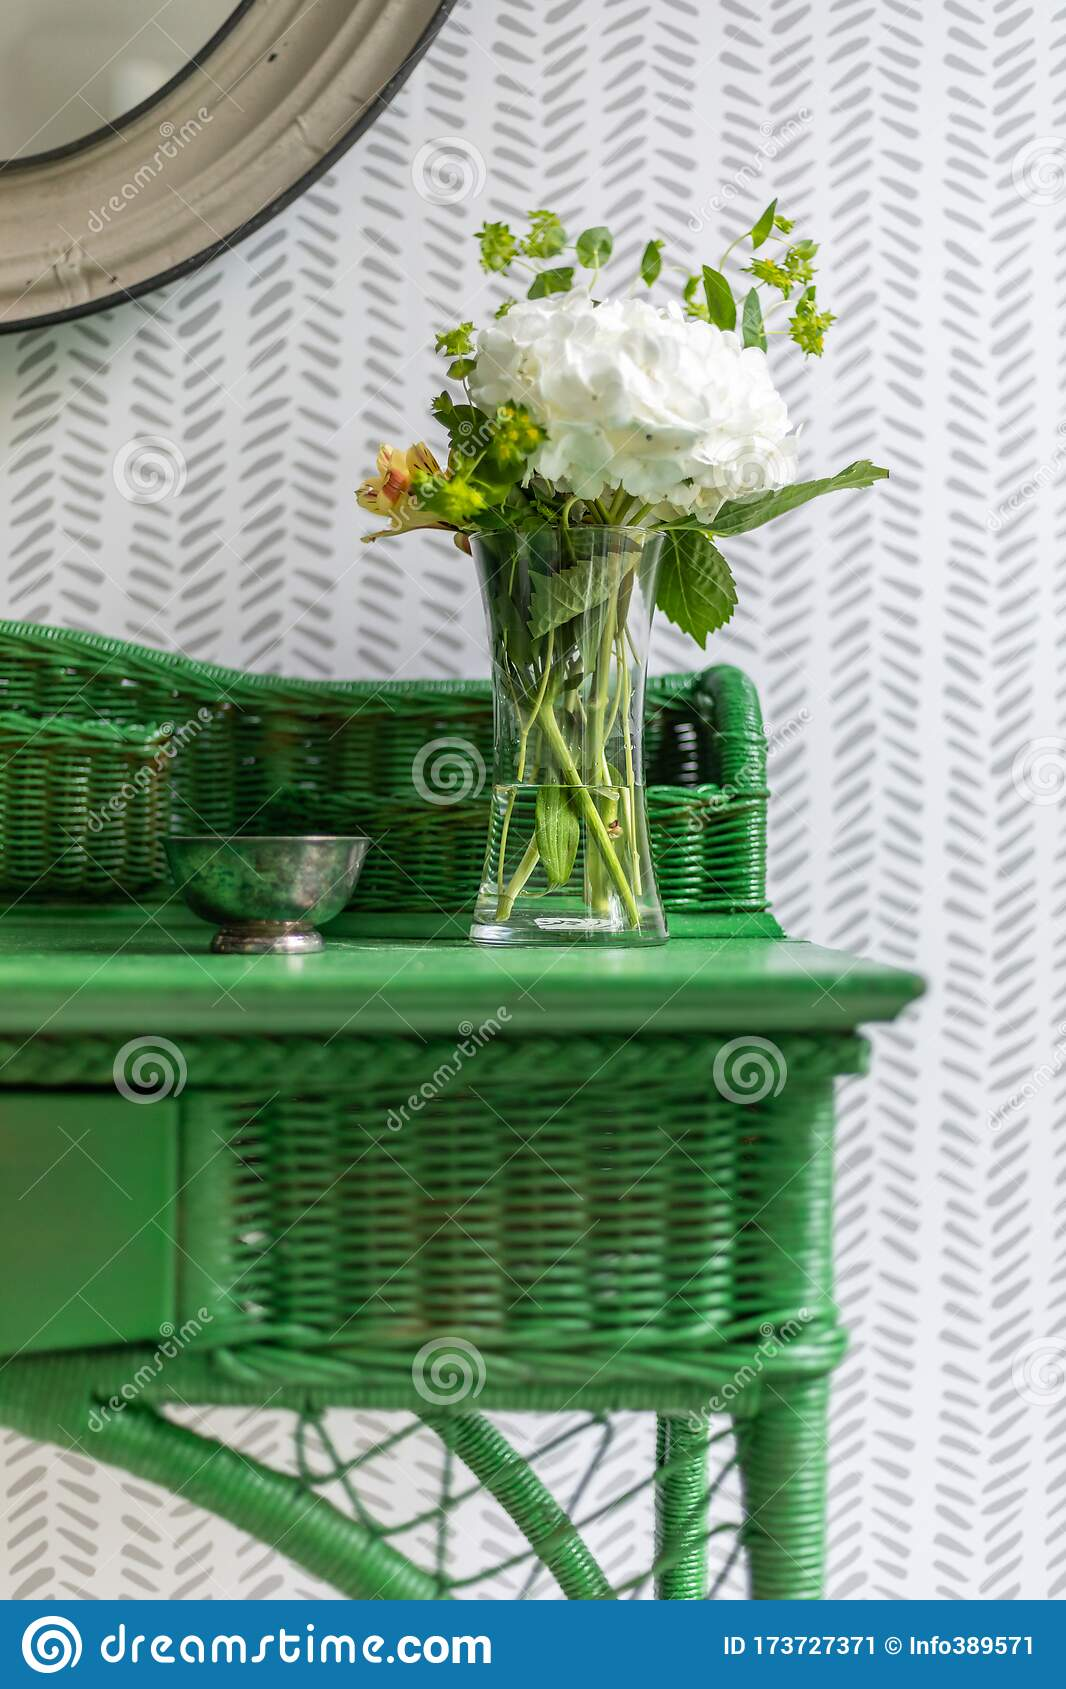 Vintage Green Wicker Nightstand With Flowers Stock Image Image Of Custom Stand 173727371